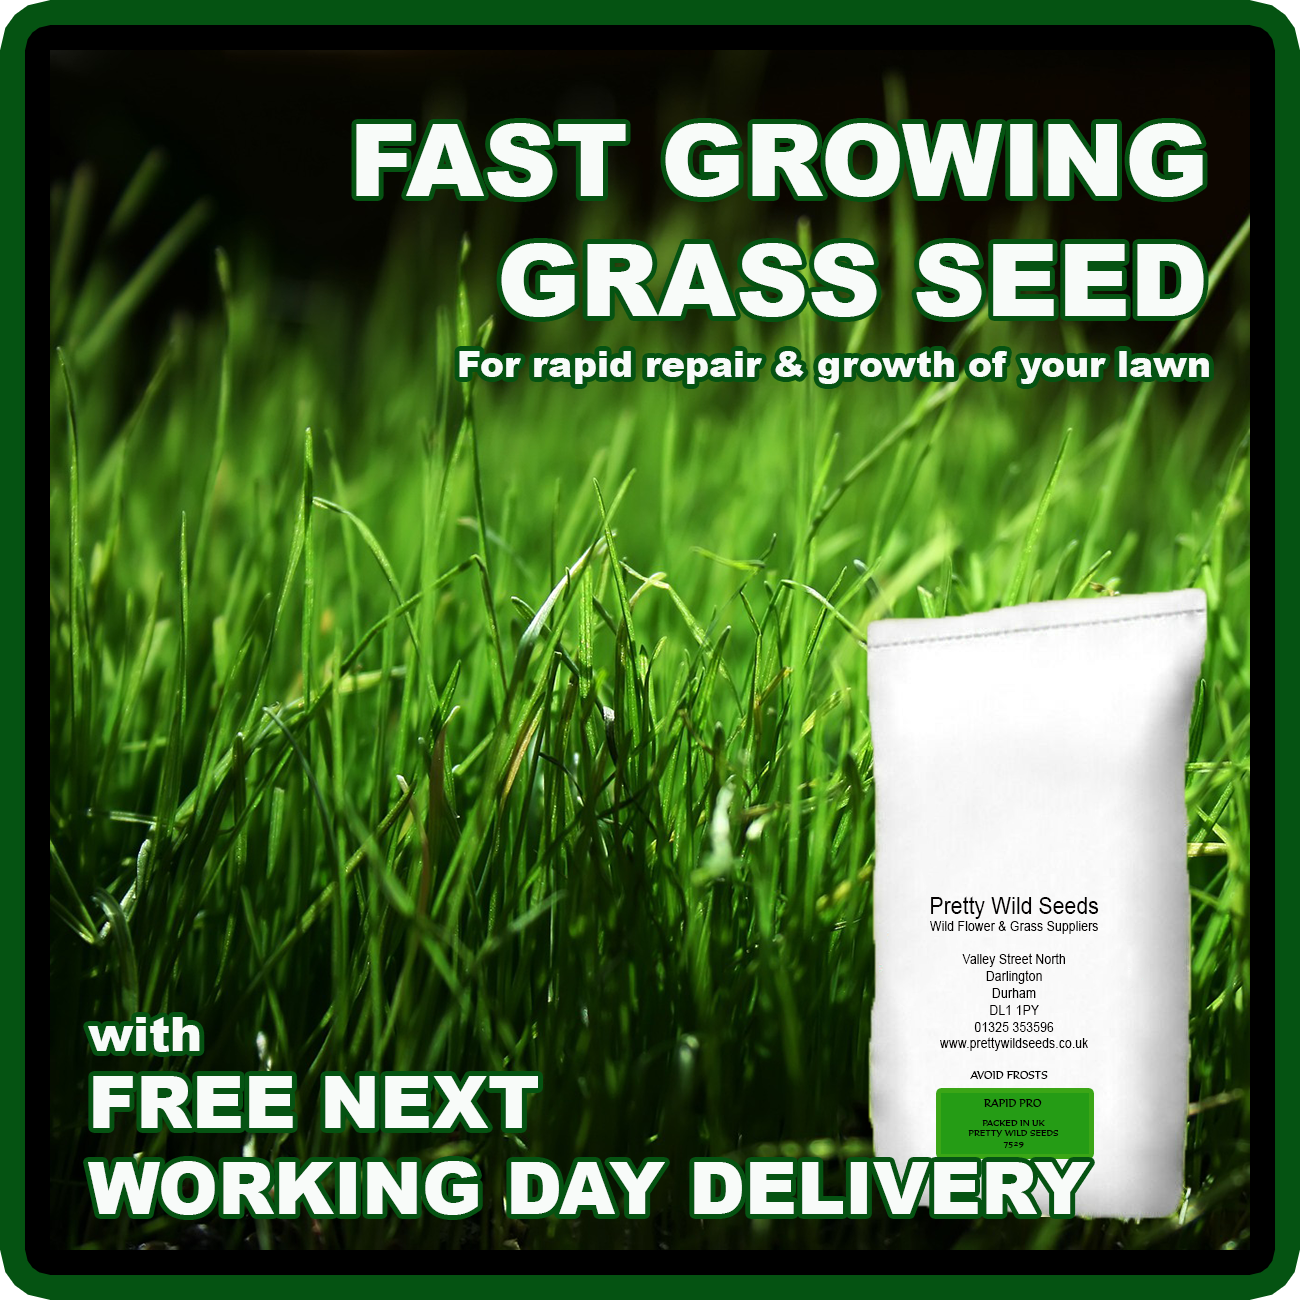 Fast Growing Rapid Lawn Grass Seed Quick Fix Repair Pets dogs Kids 1-500kg